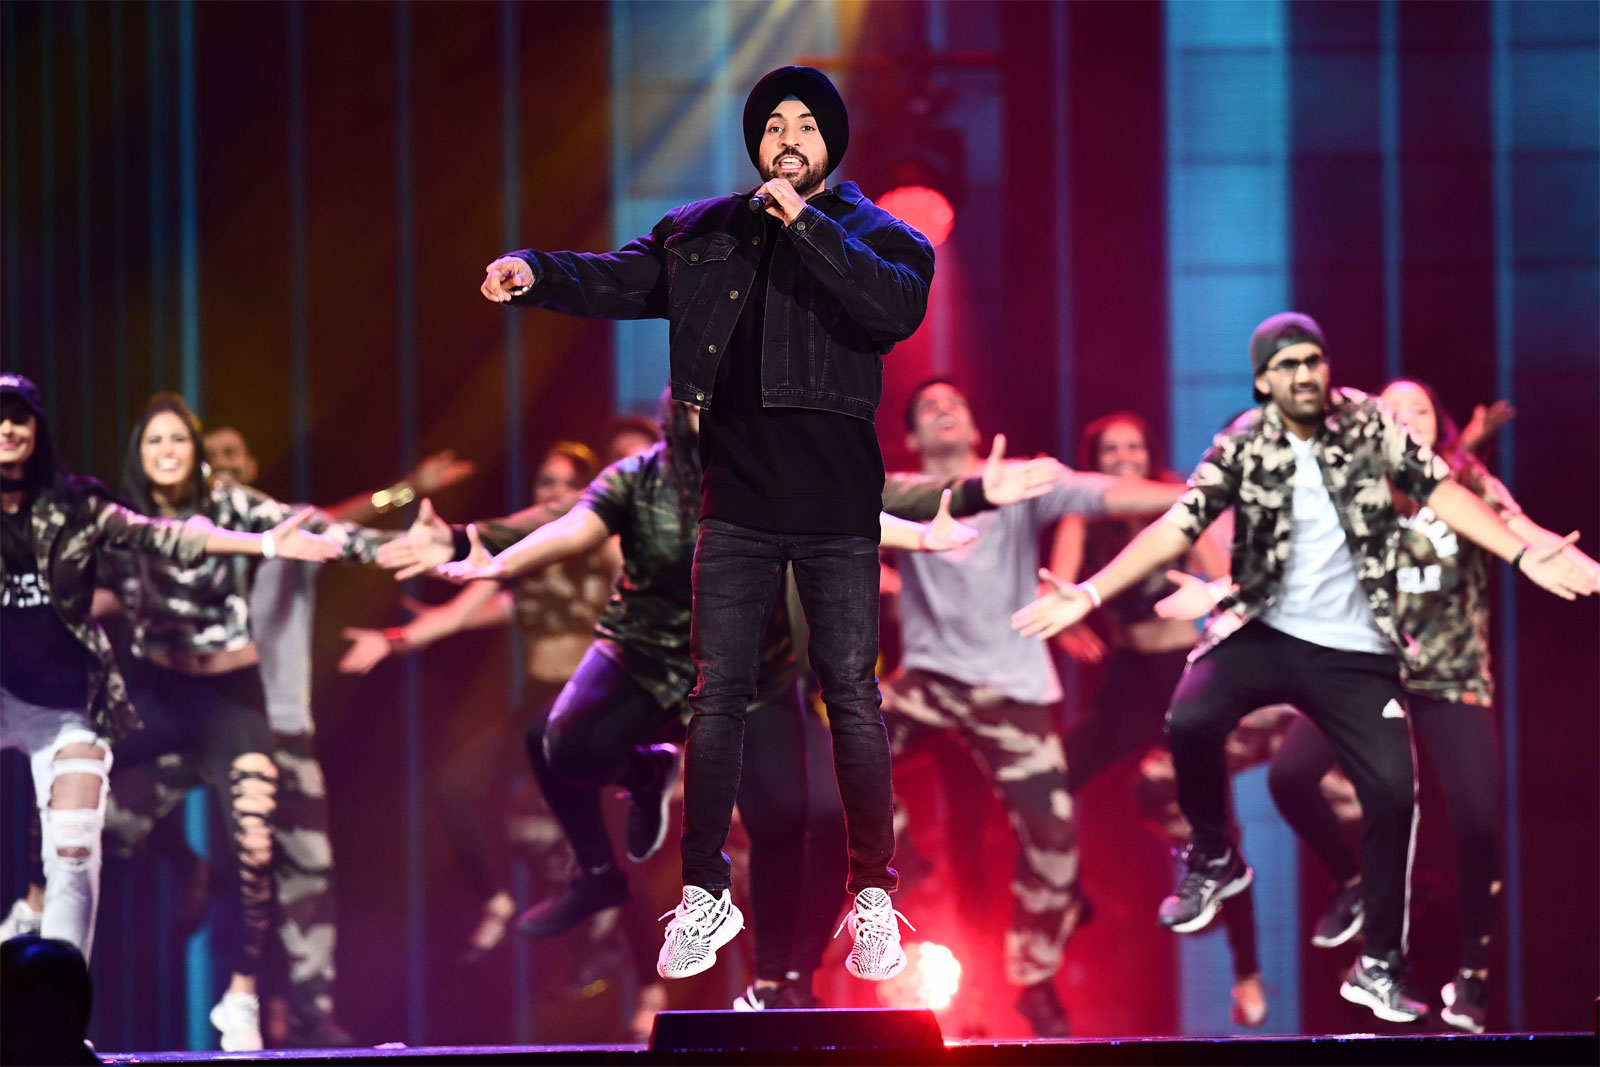 Singer Diljit Dosanjh performs on stage during IIFA Awards 2017/AFP